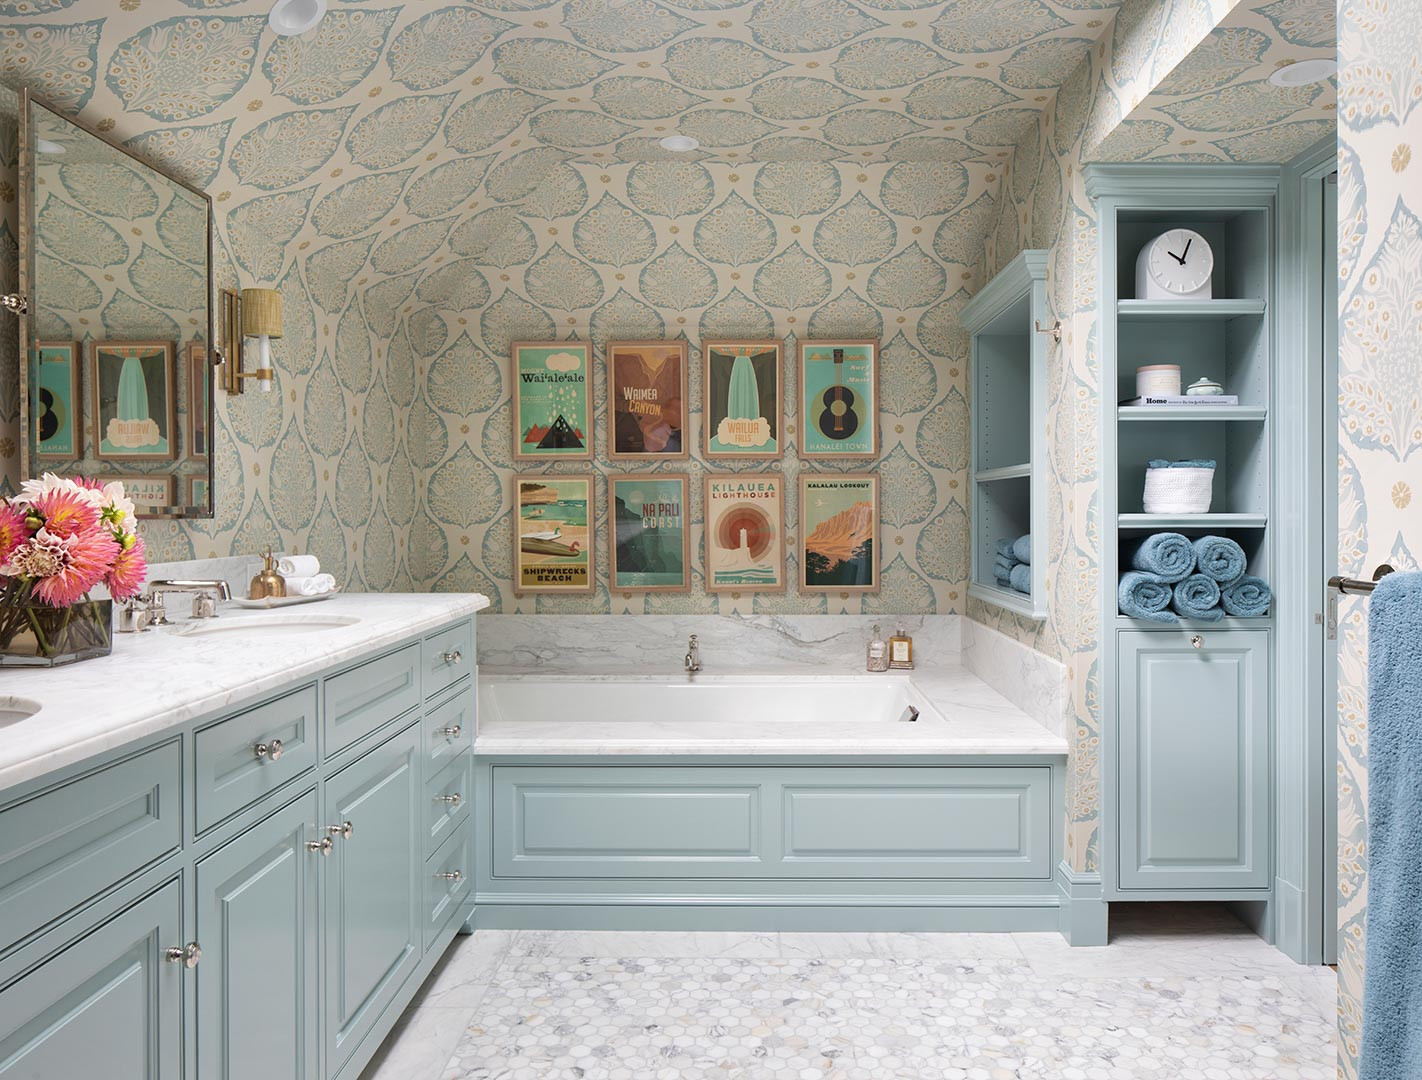 75 Beautiful Wallpaper Ceiling And Wallpaper Bathroom Pictures Ideas April 2021 Houzz